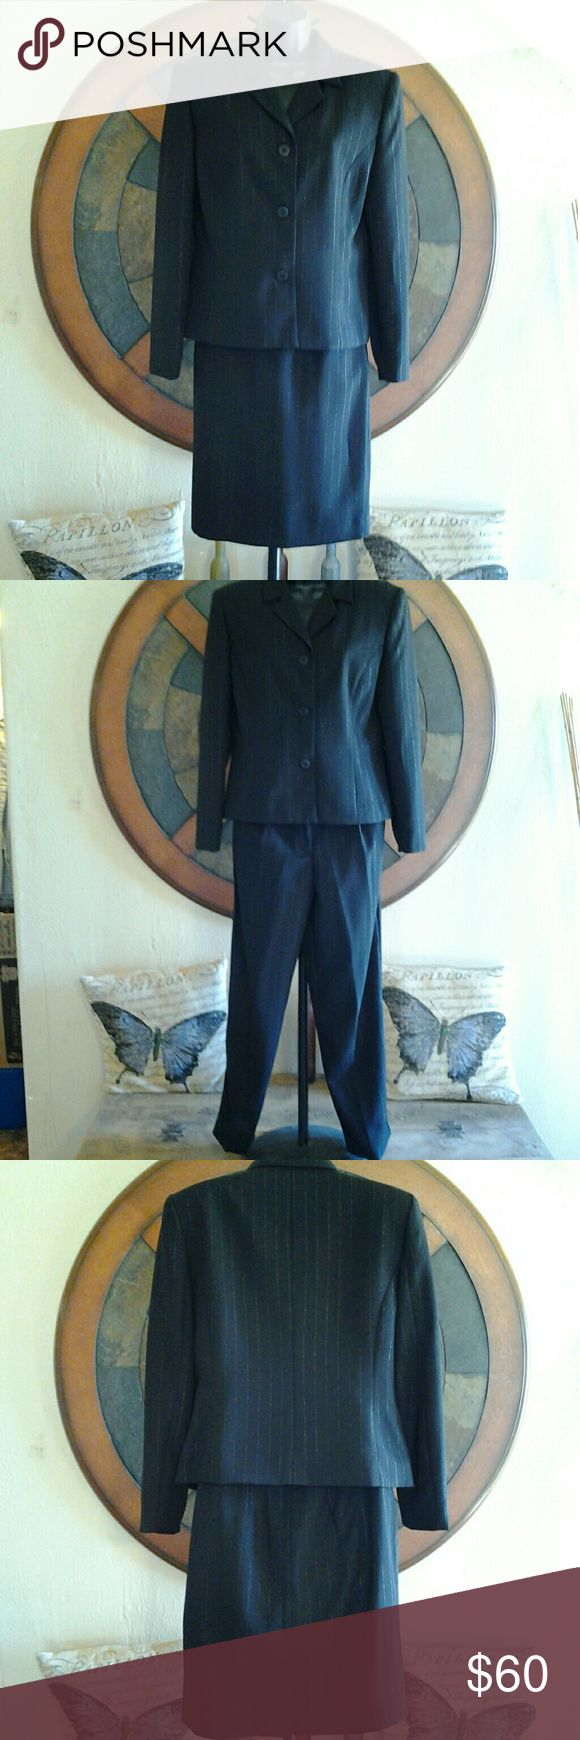 ■TWO DAY SALE■ Karen Scott petites 3 piece10P & 8P Karen Scott petites 3 piece suit size 10P Blazer & both pants and skirt are size 8P. Black with silver pin stripes Karen Scott  Other